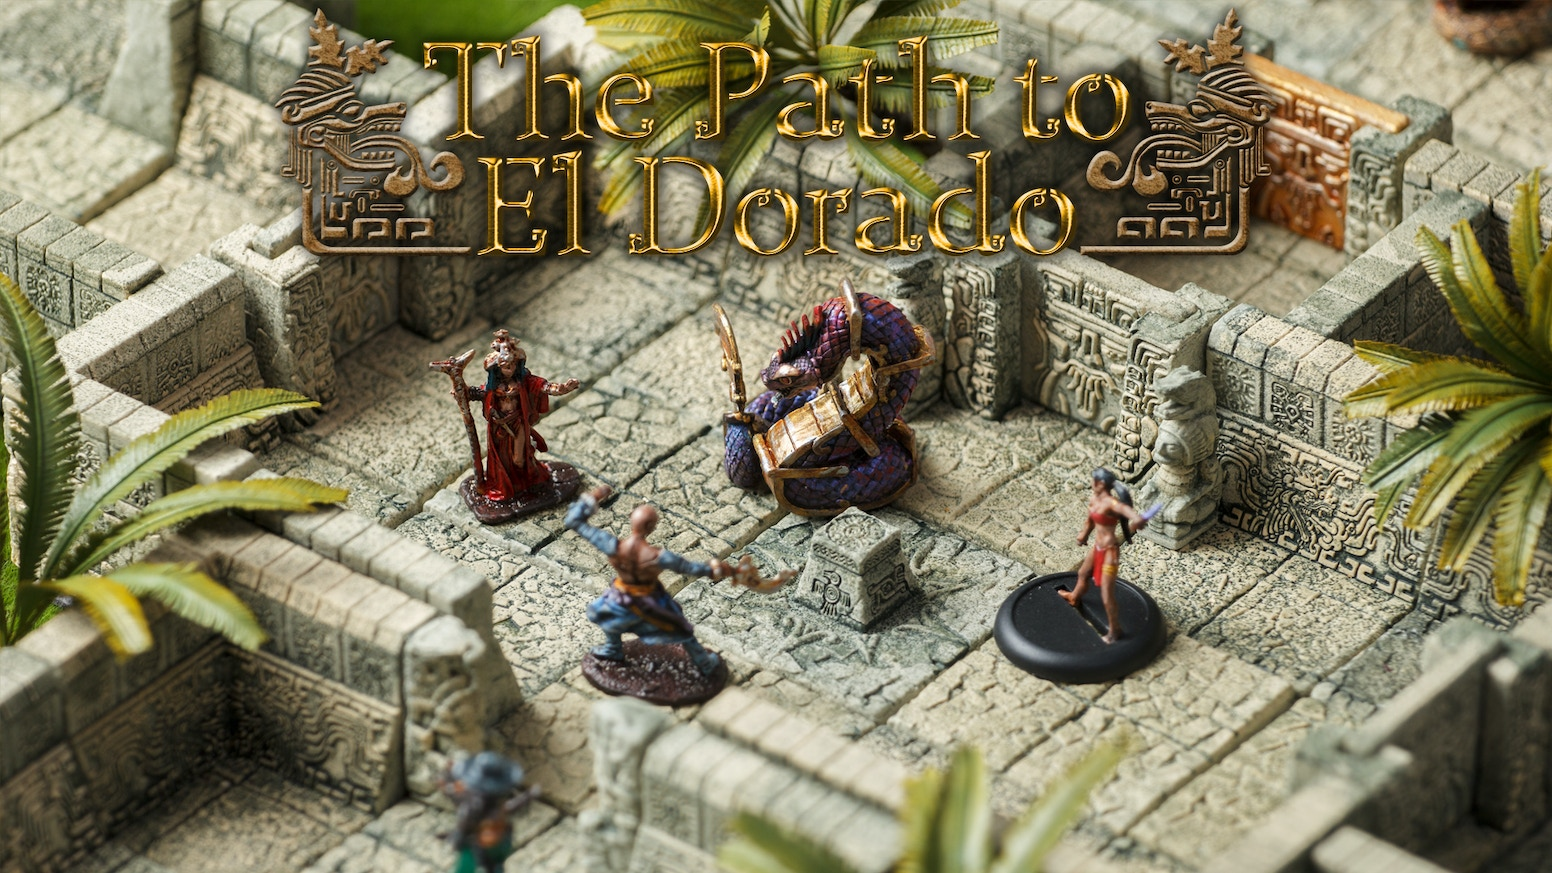 The Path to El Dorado - Aztec terrain tiles, 25mm modular dungeons for tabletop rpgs. Inspired by Aztec ruins and ancient legends. Now available for pre-order !